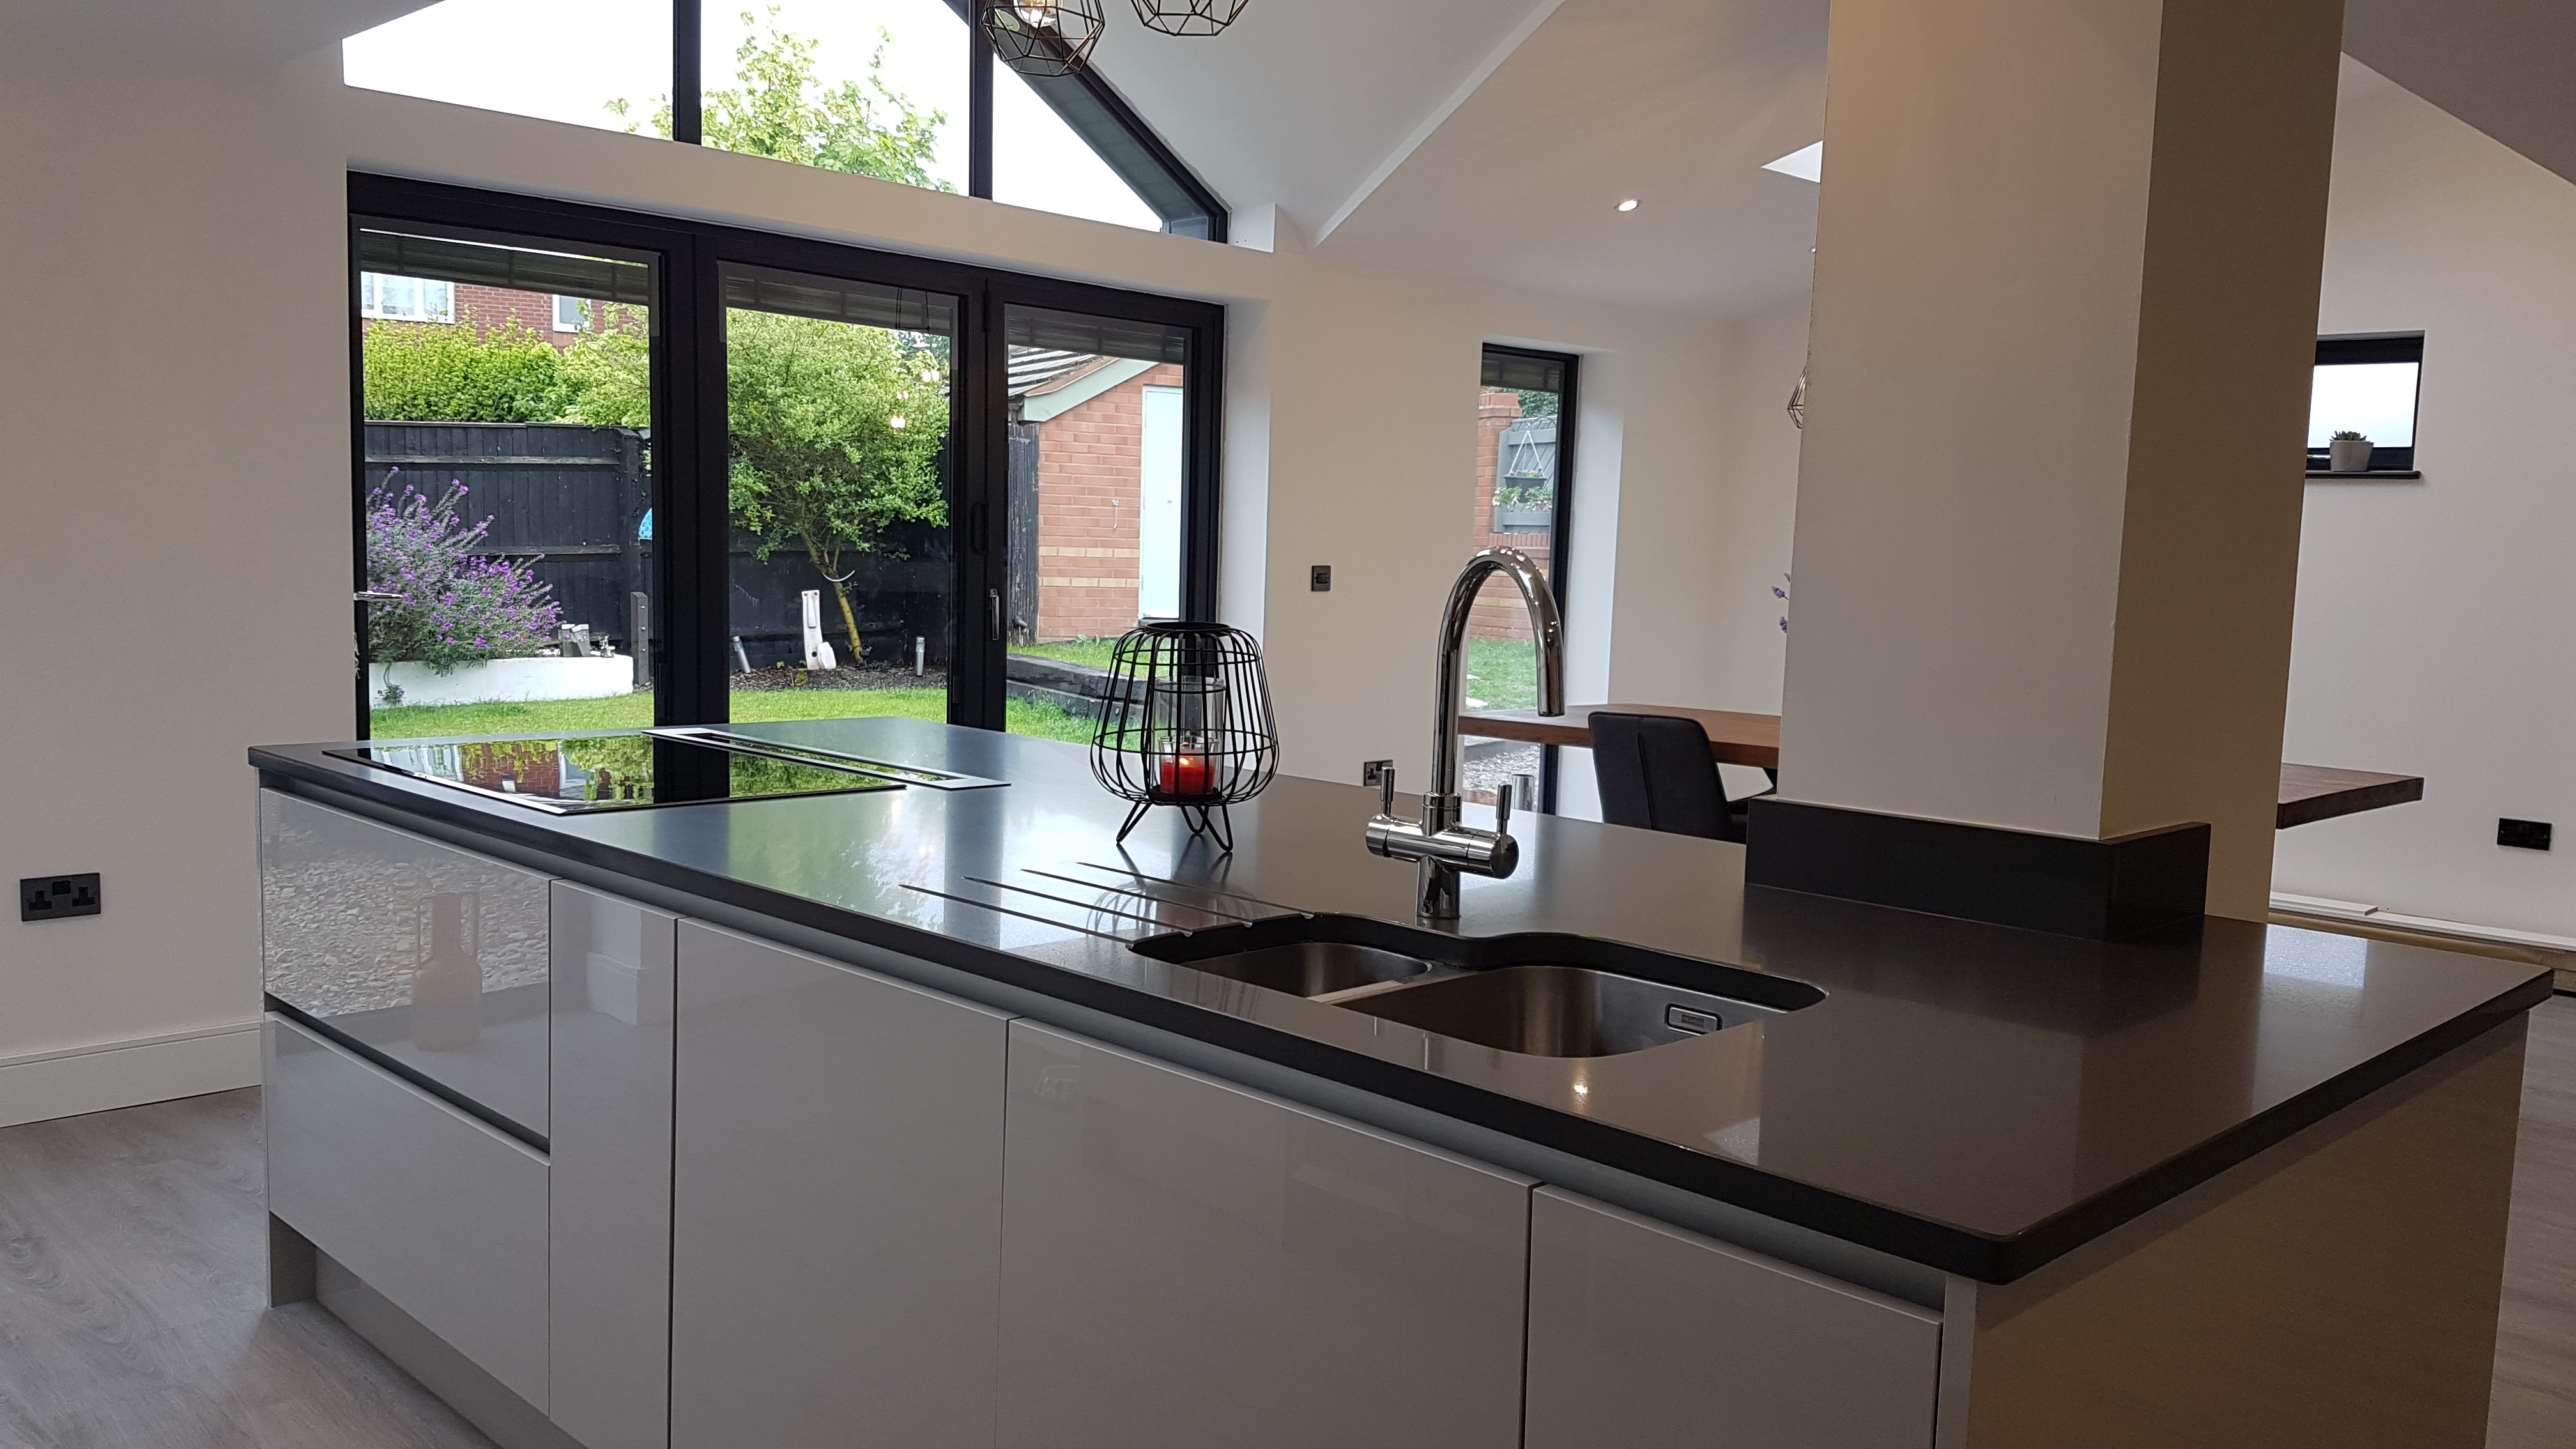 Croft Architecture plan the perfect kitchen with The Rigid Kitchen Company